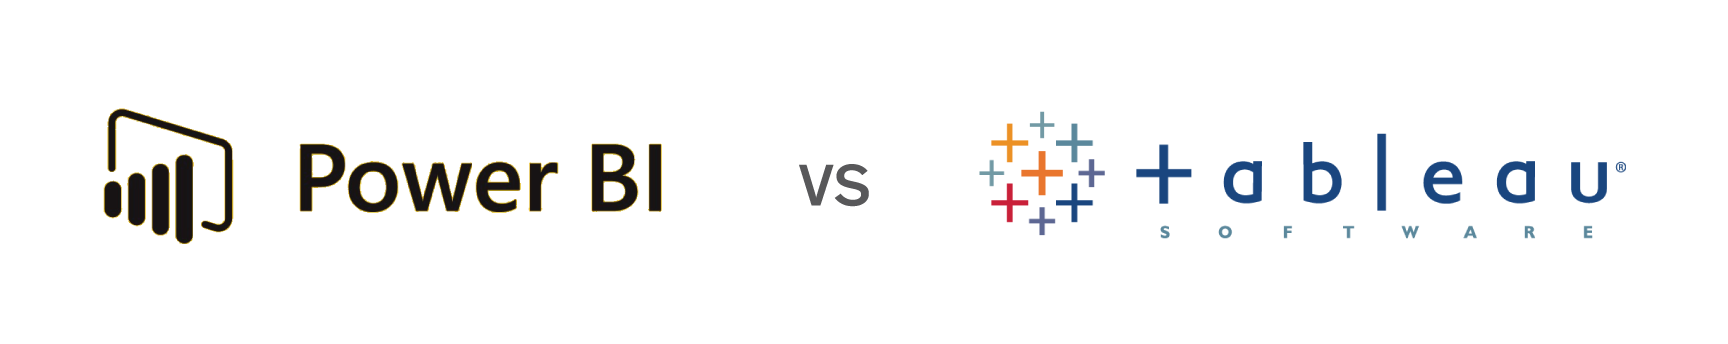 Power bi logo png. Vs tableau what to